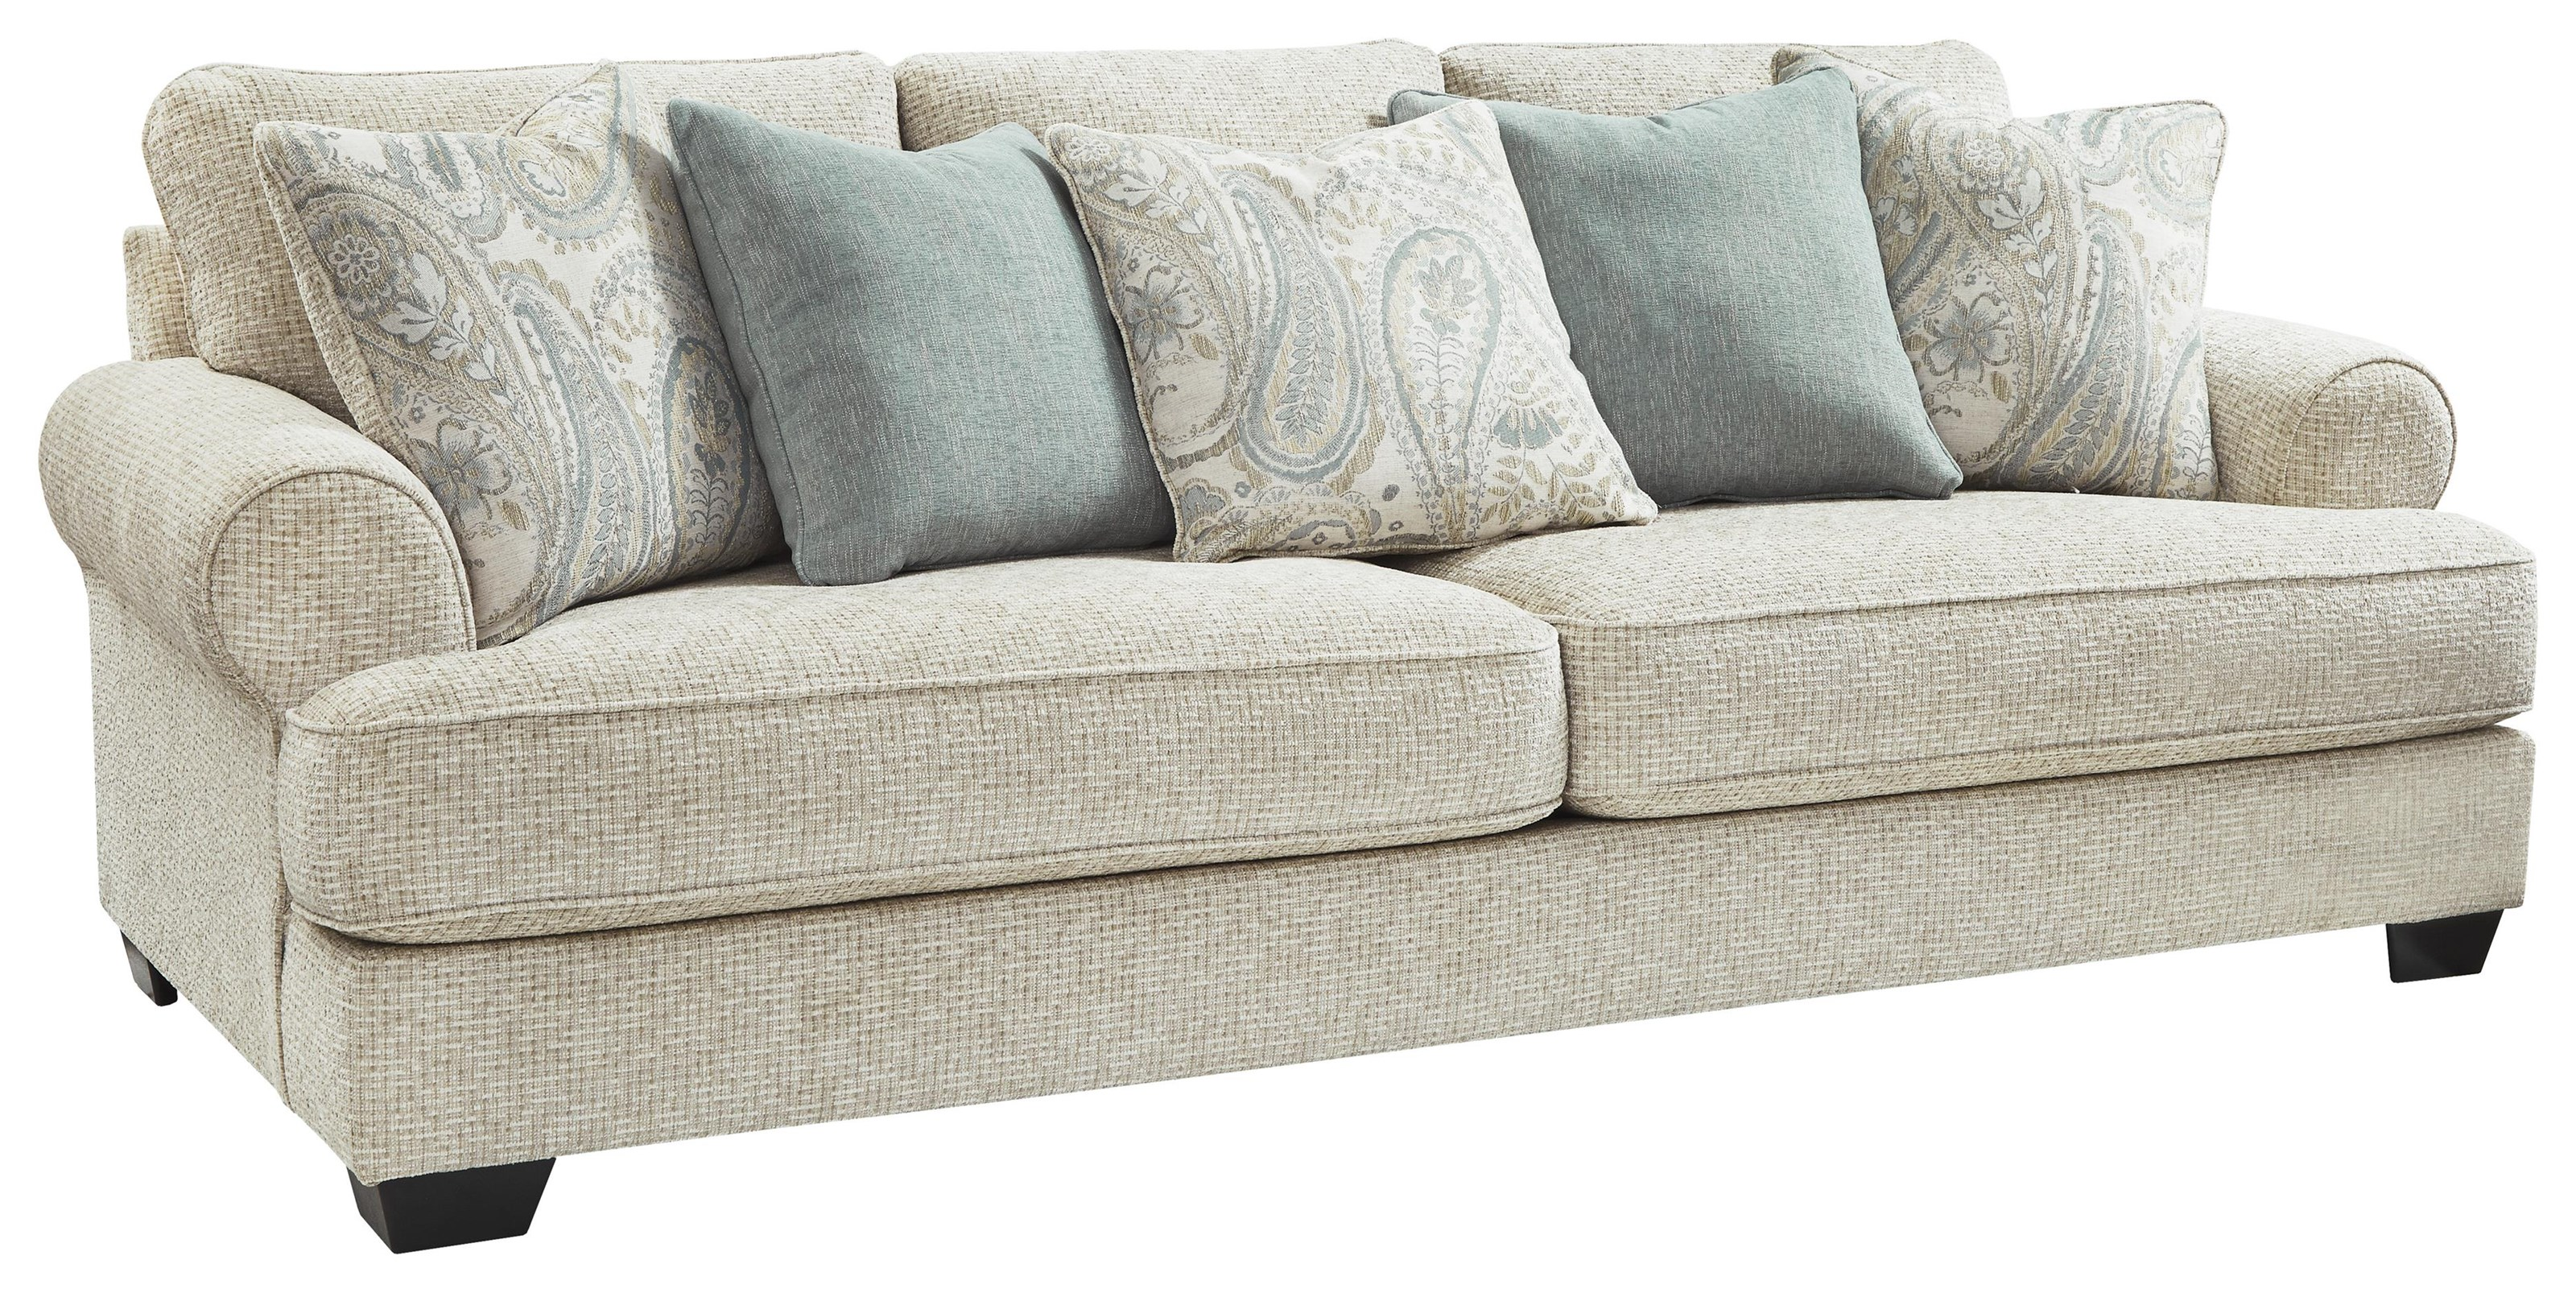 Monaghan Sofa by Ashley Furniture at Sam Levitz Outlet